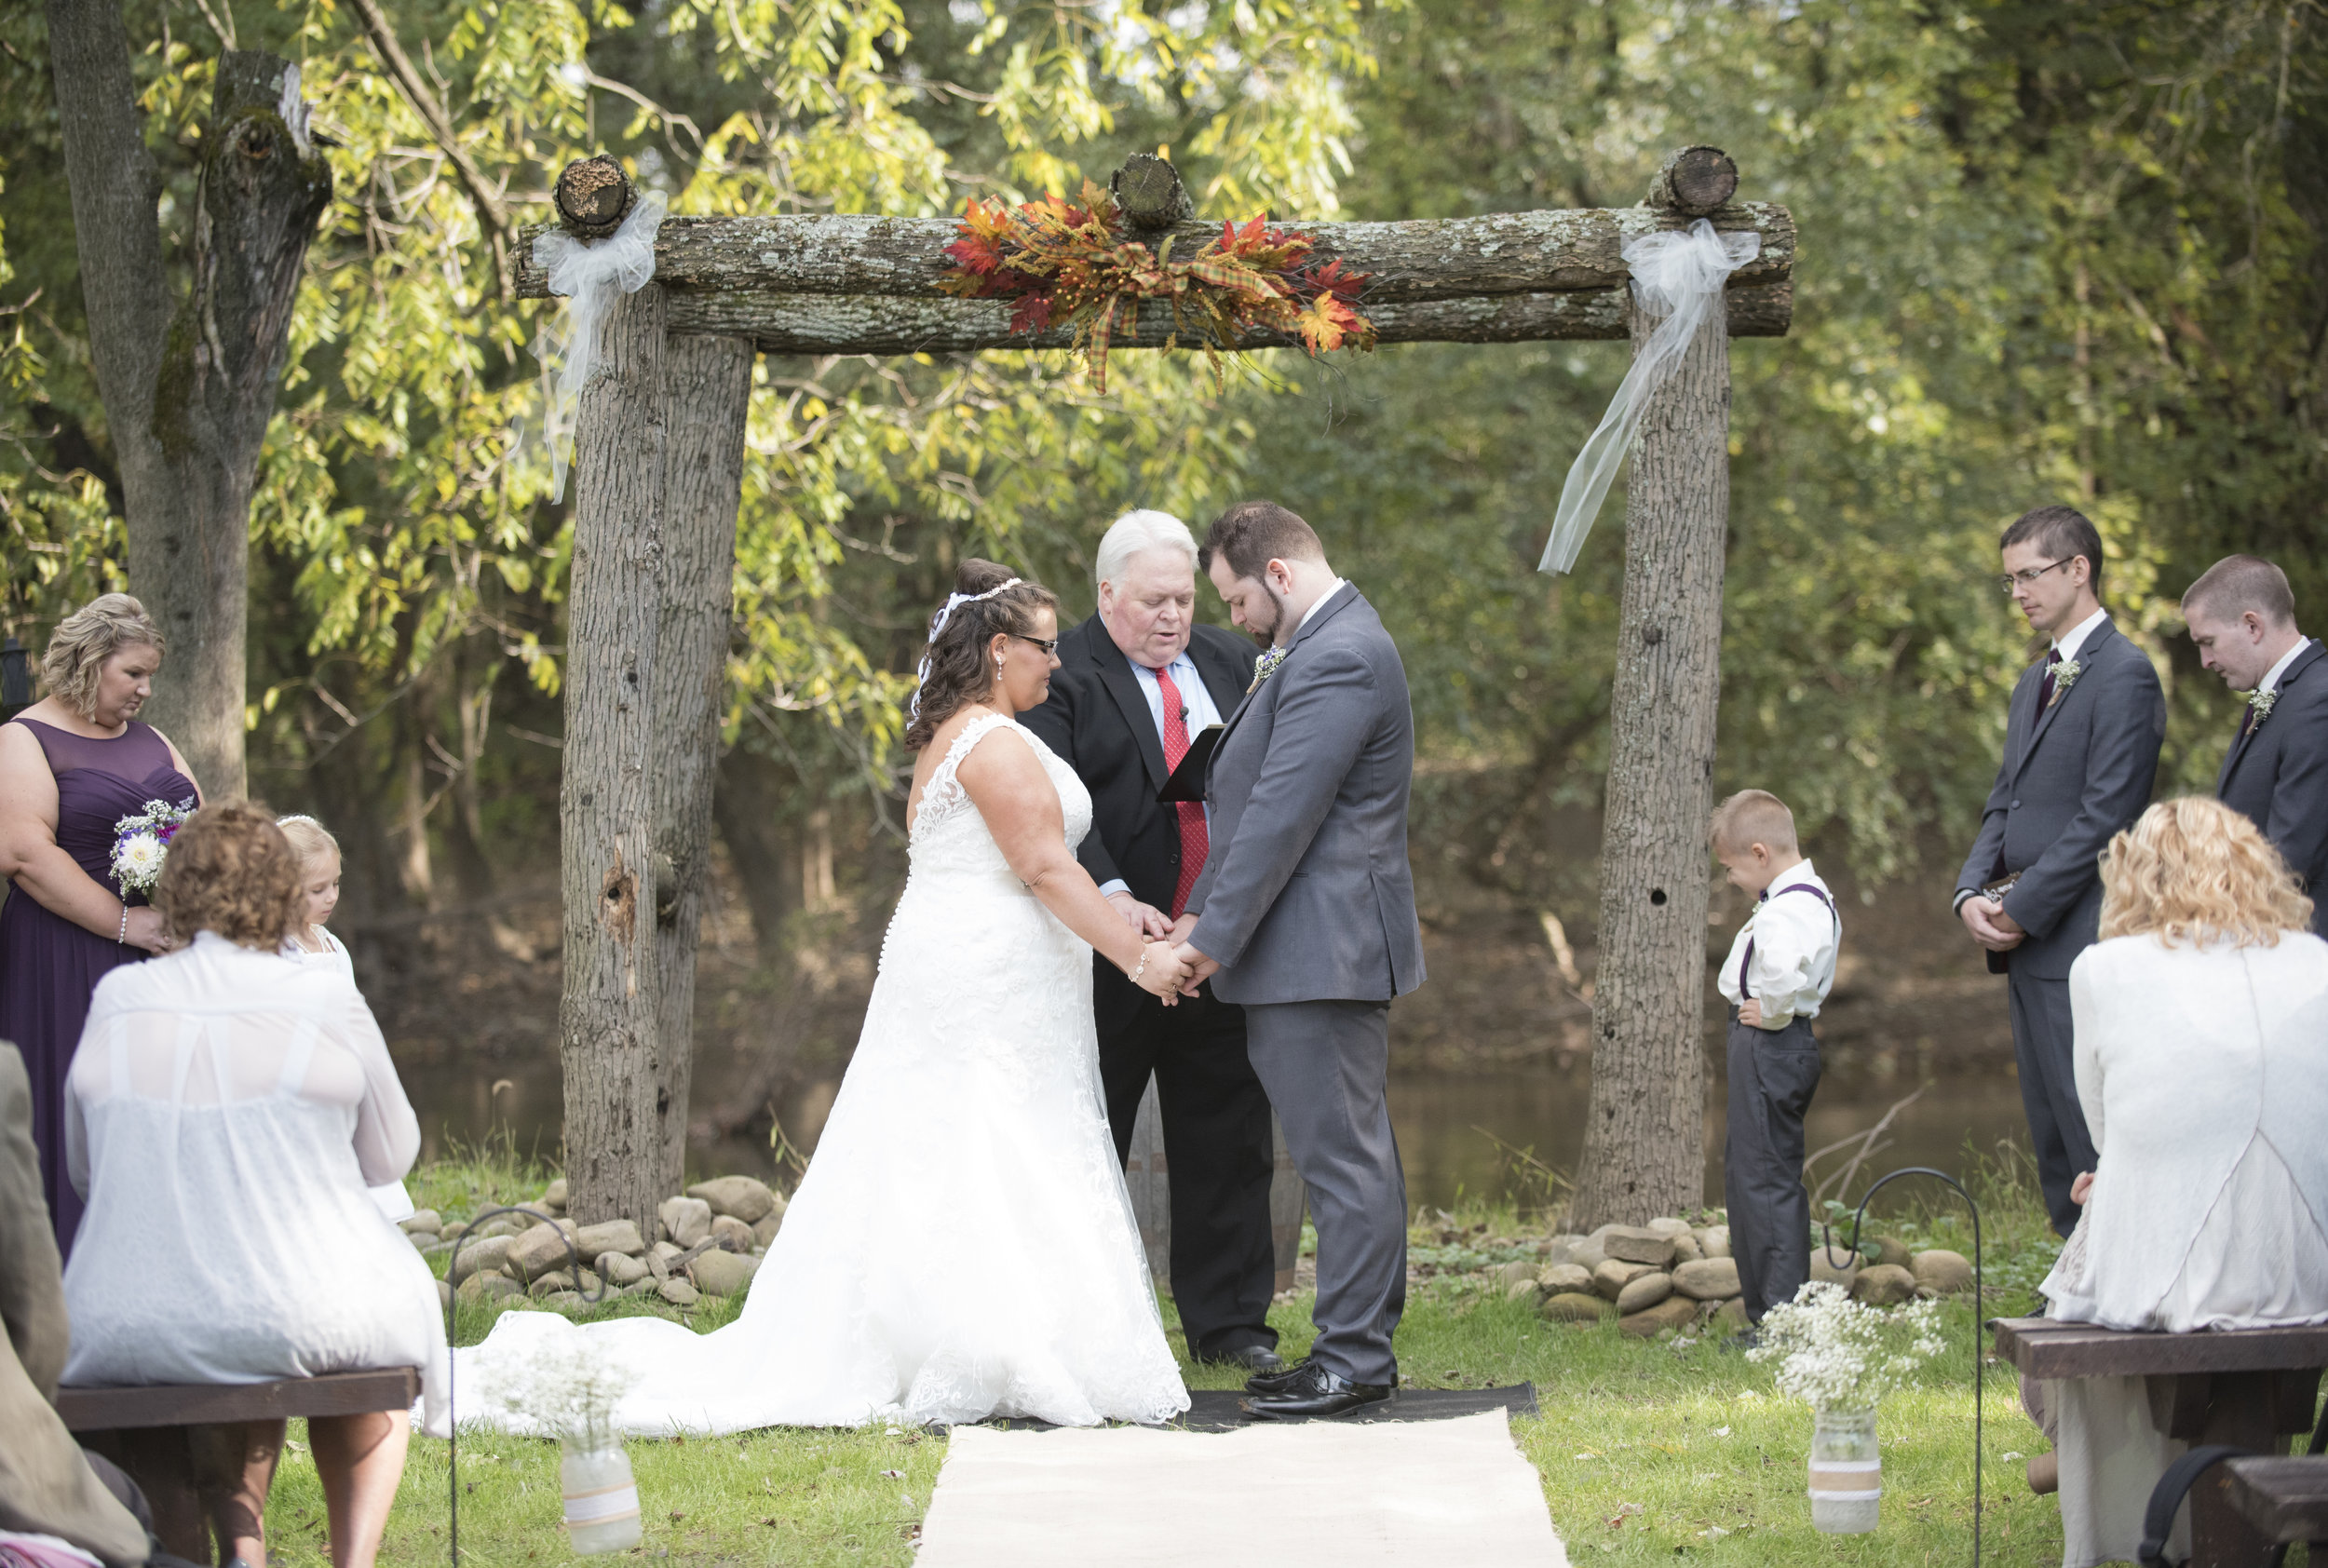 The Stone Barn Winery Farm Wedding